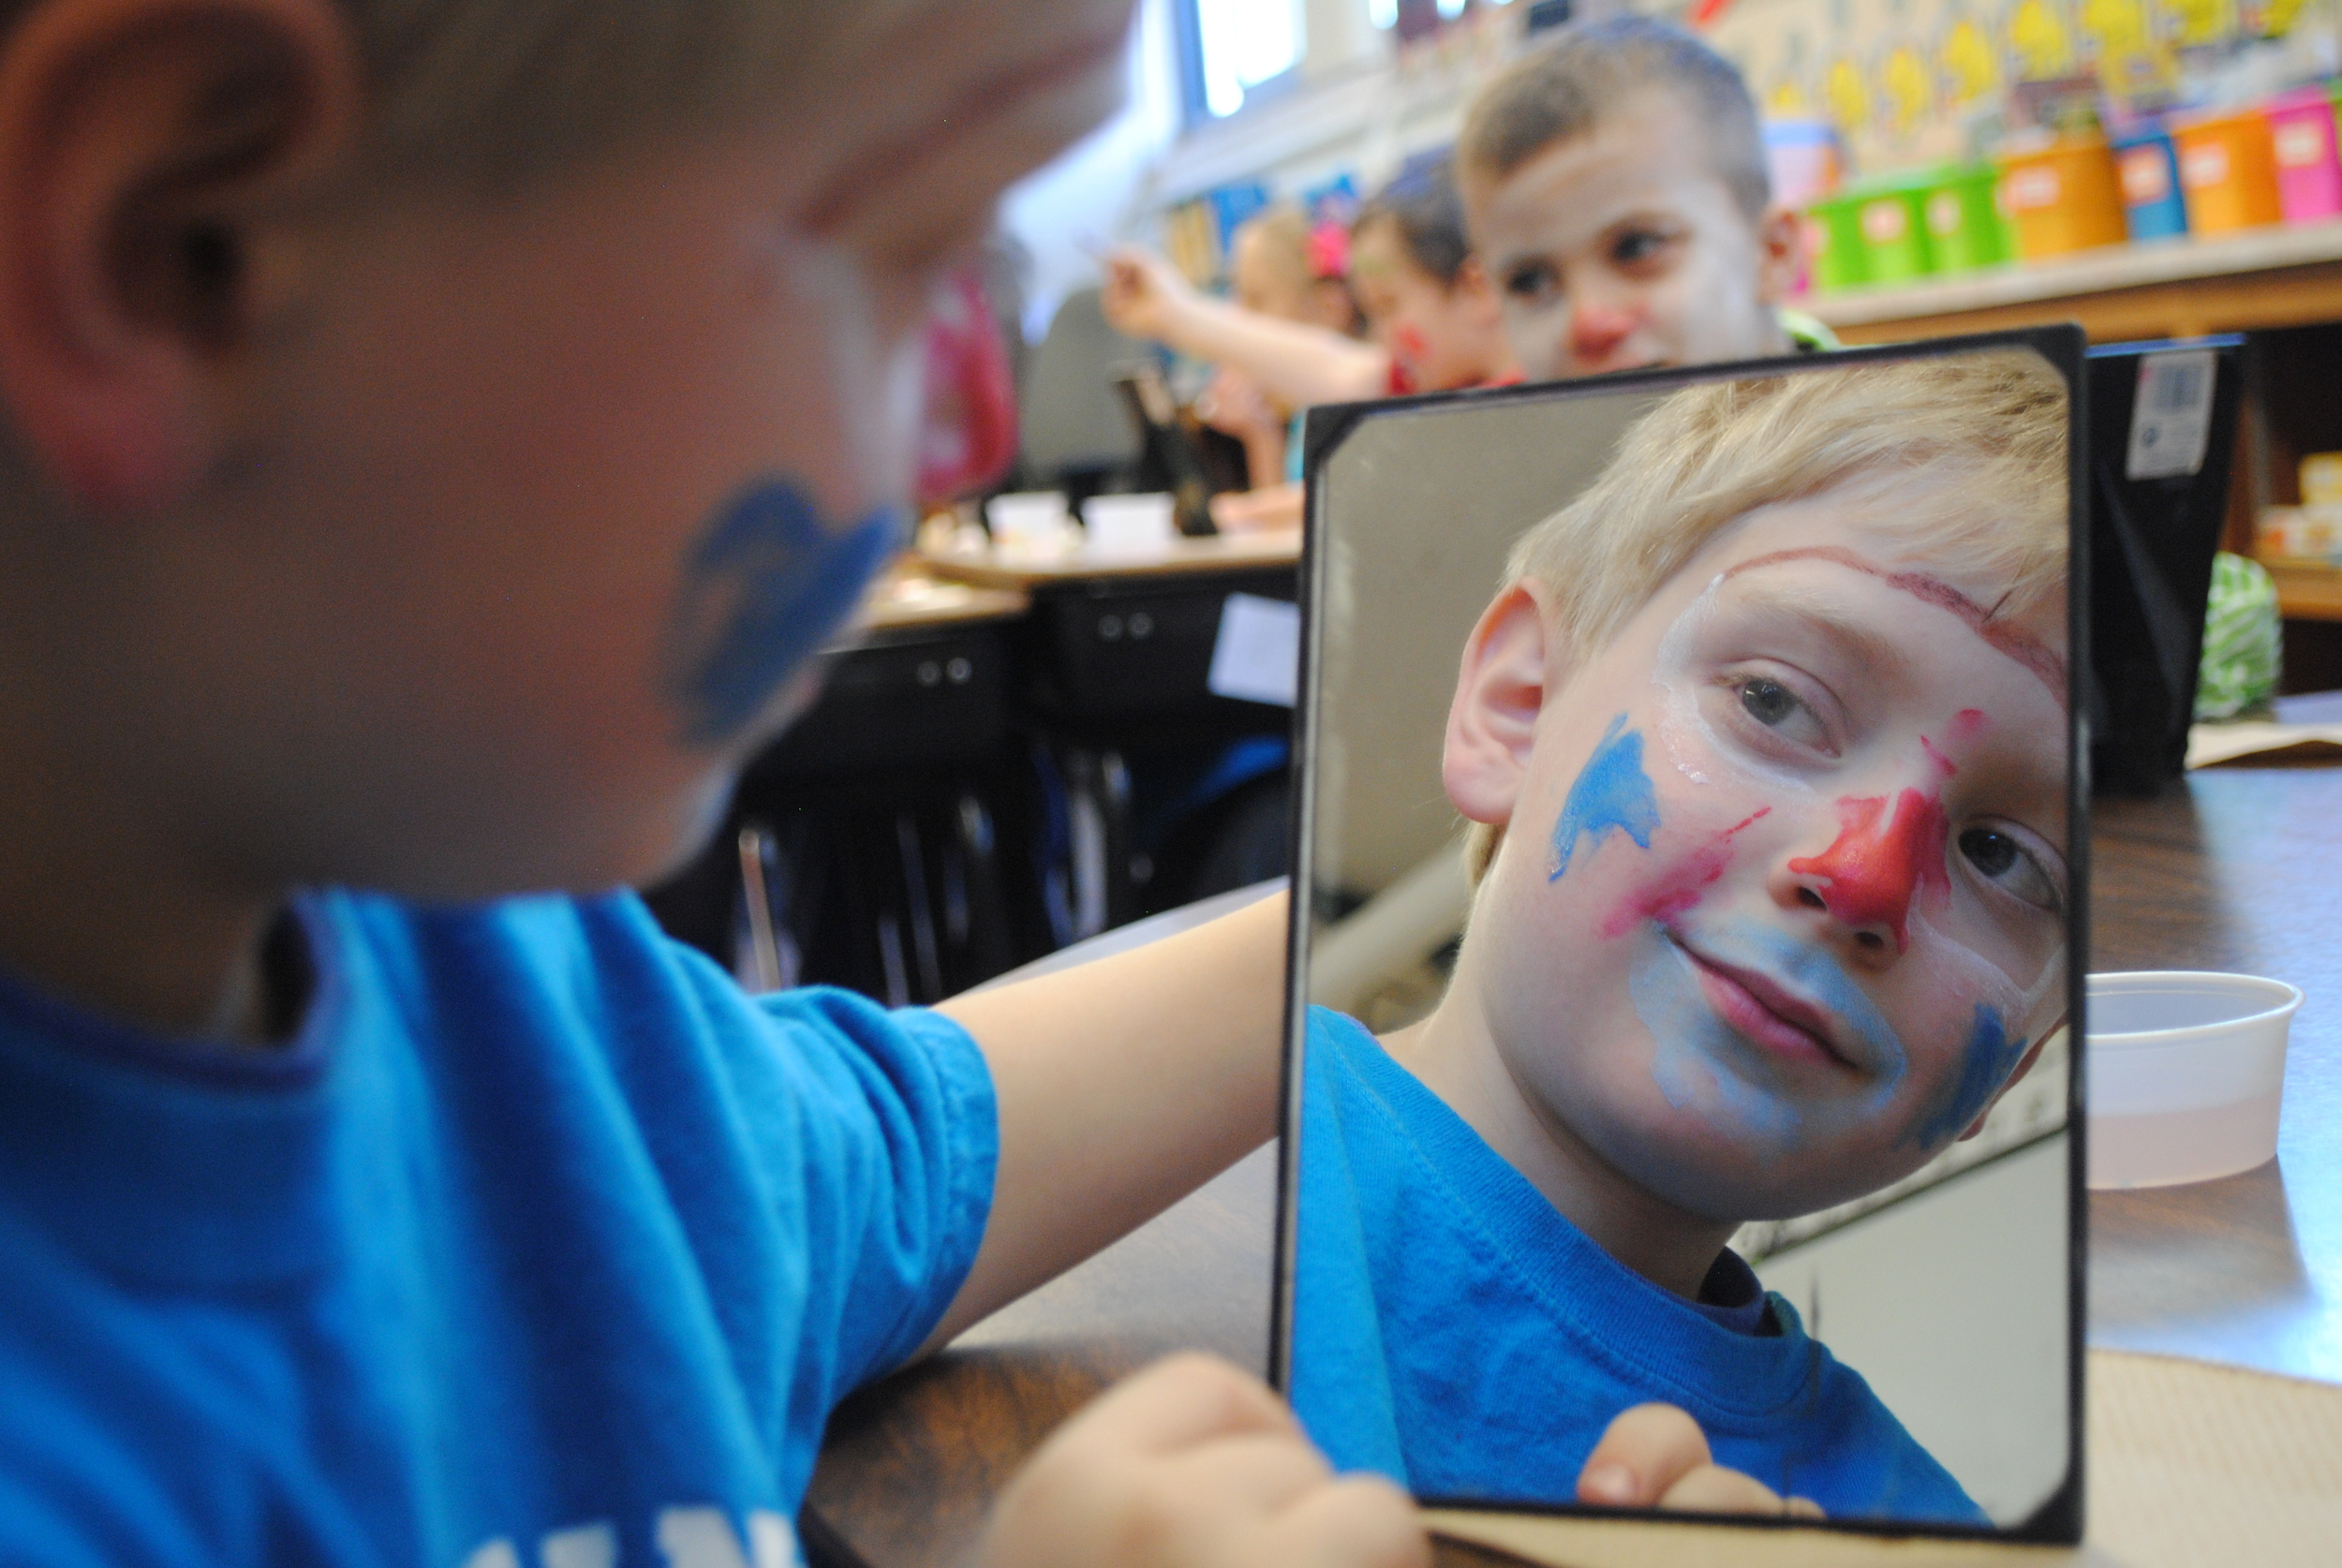 Christopher Davis admires his handiwork while applying clowning make-up on Friday, March 13. First-graders were getting ready for their clowning performance that afternoon.